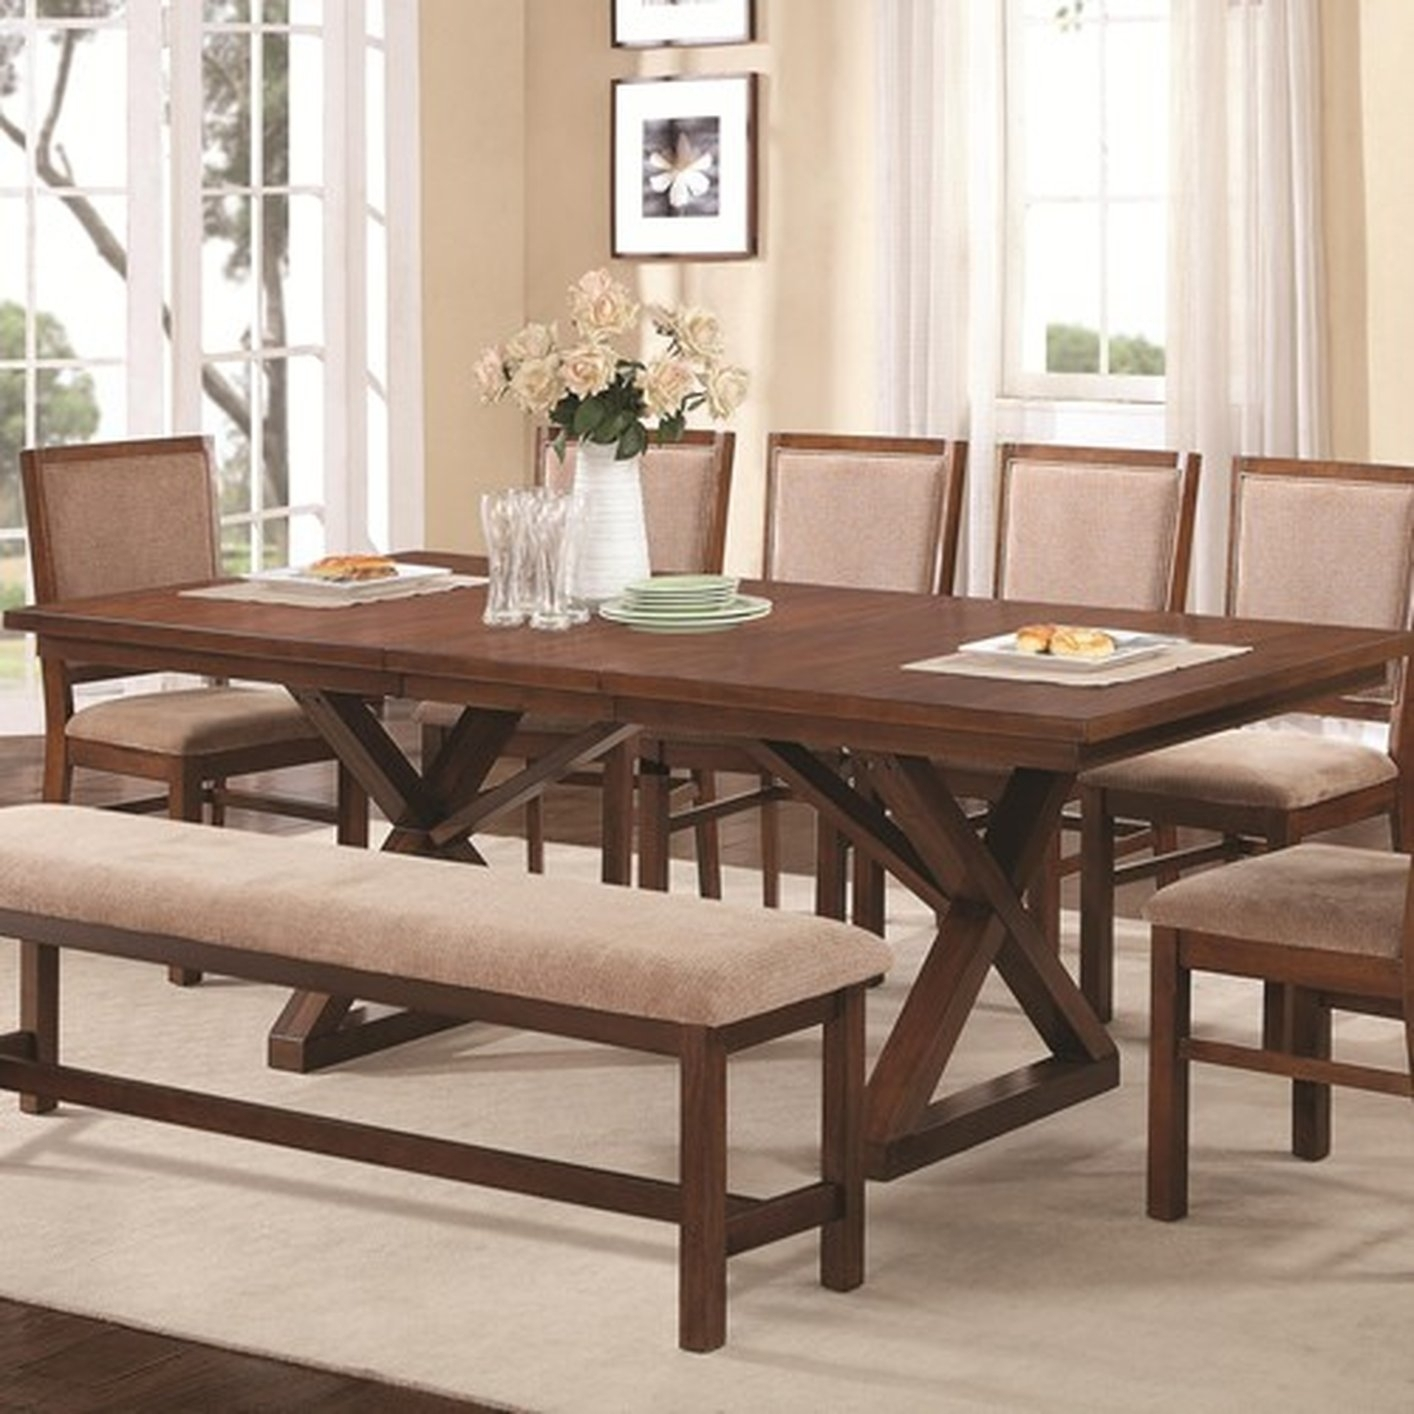 Brown Wood Dining Table - Steal-A-Sofa Furniture Outlet Los Angeles Ca intended for Sofa Chairs With Dining Table (Image 1 of 10)